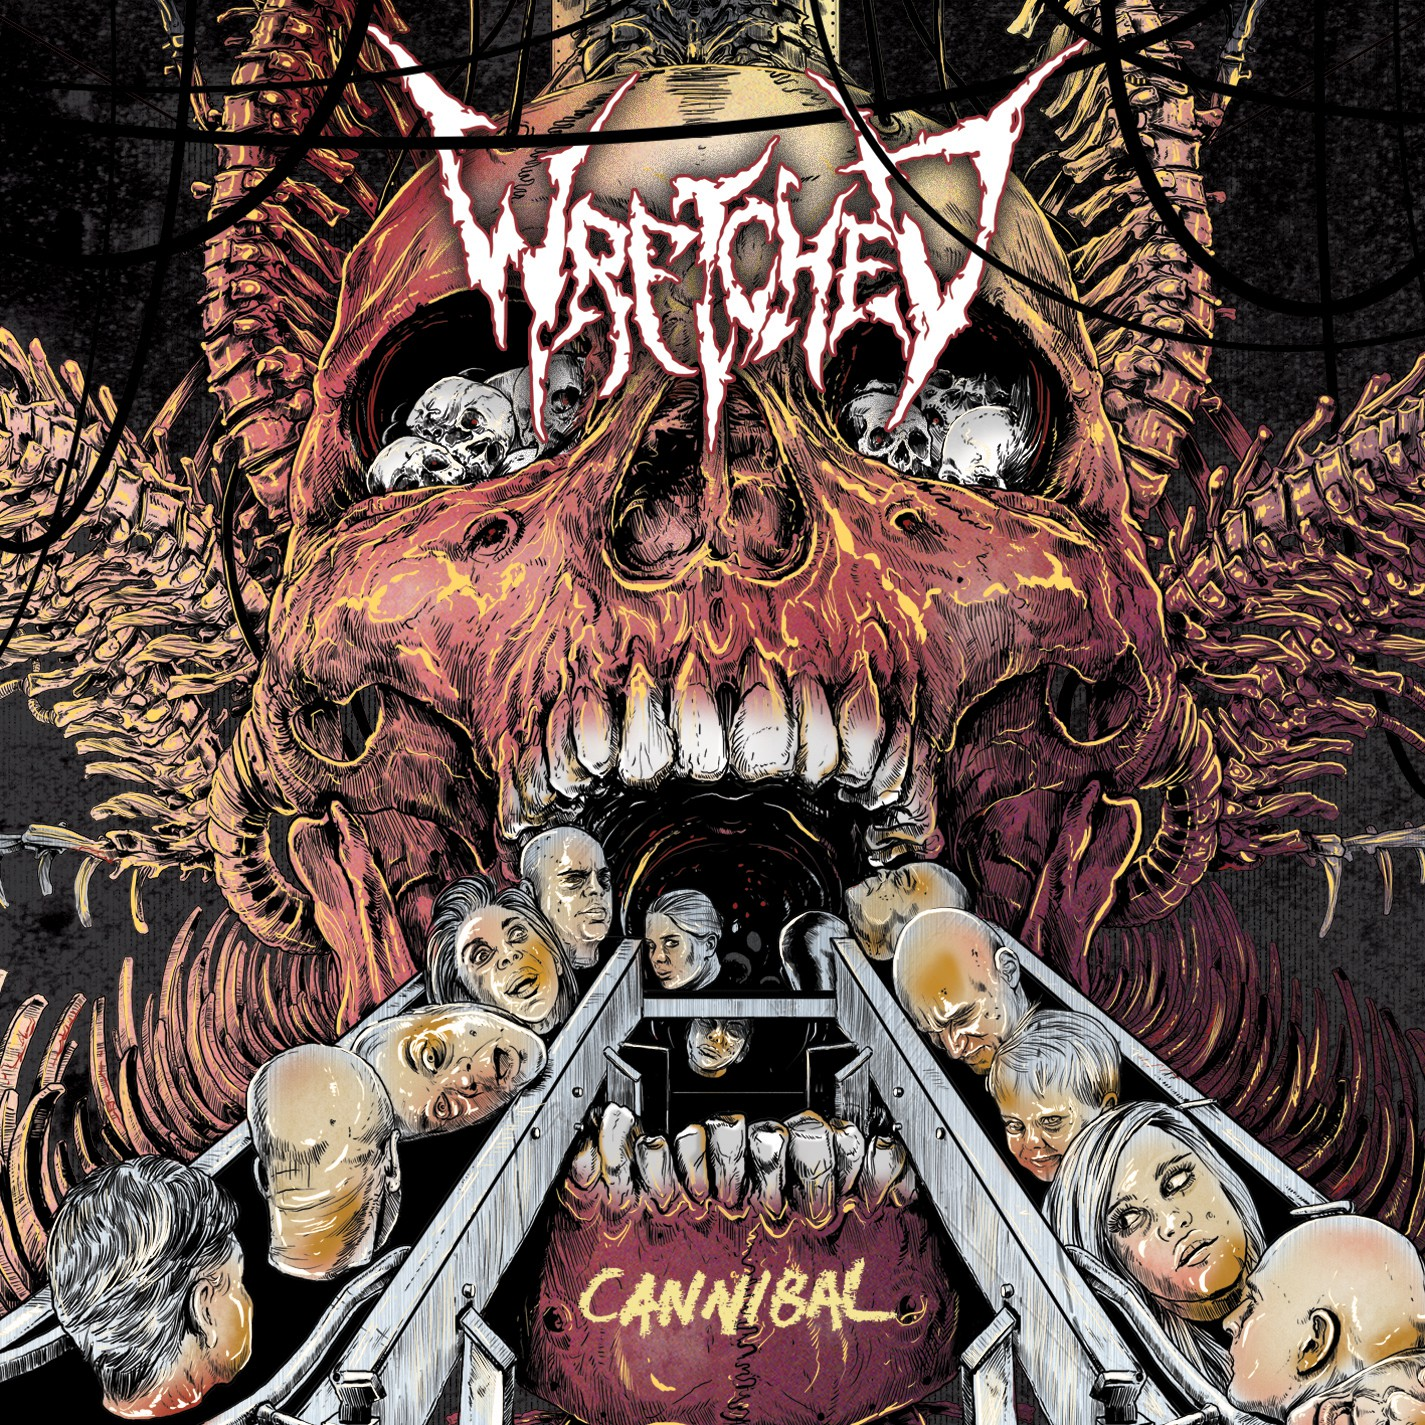 Wretched – Cannibal Review